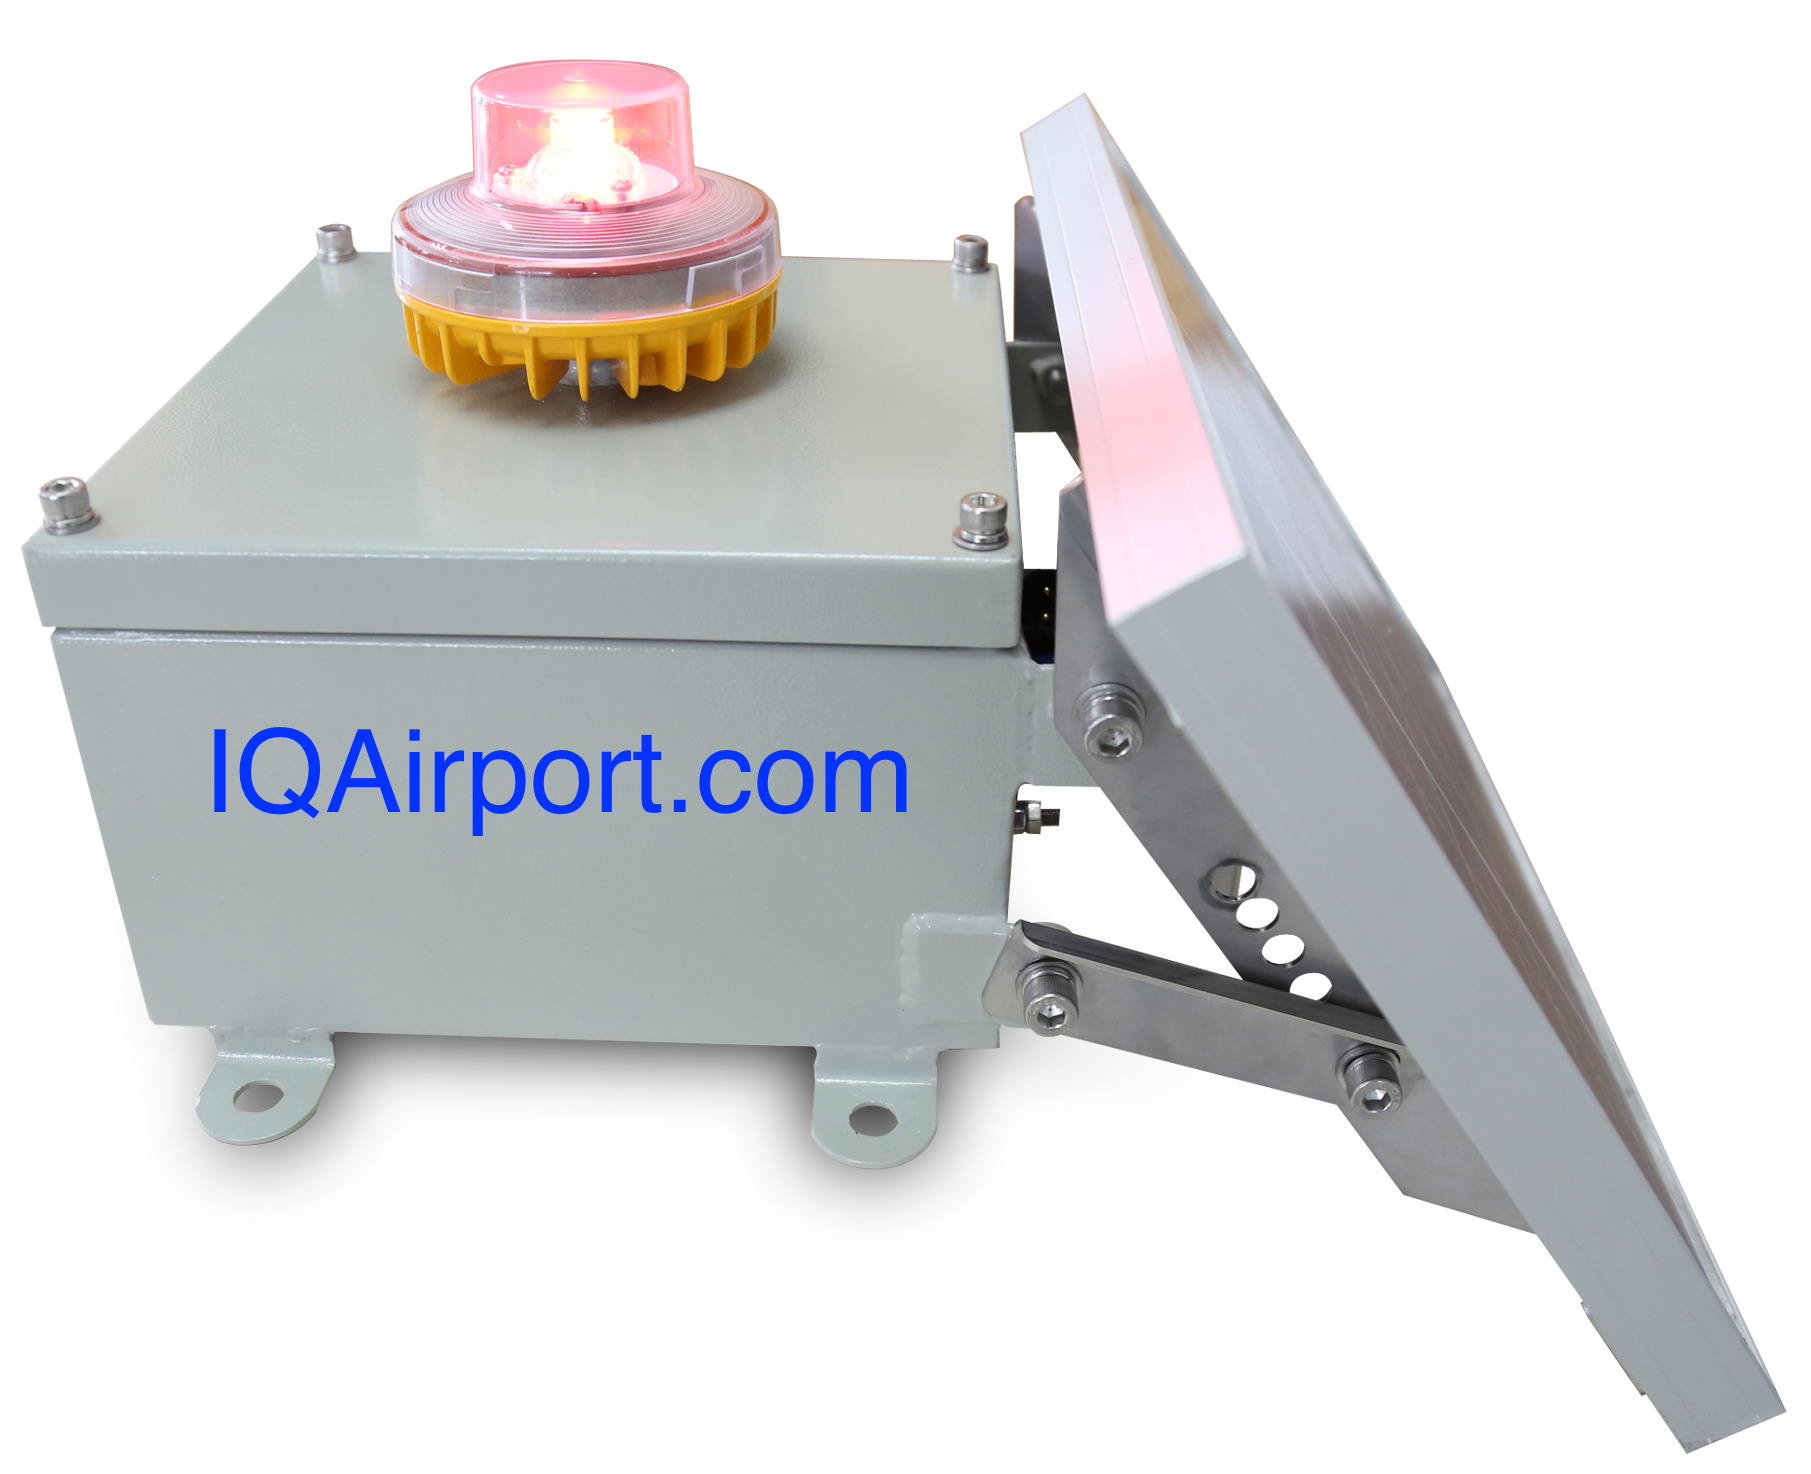 Solar Obstruction Light, Solar Powered Obstruction Light, LED Solar Aircraft Light, Solar Aviation Obstruction Lights, Solar Tower Obstruction Light for Night Marking Telecommunication Towers, Solar Crane Obstruction Light, Solar Powered Aviation Warning Lights